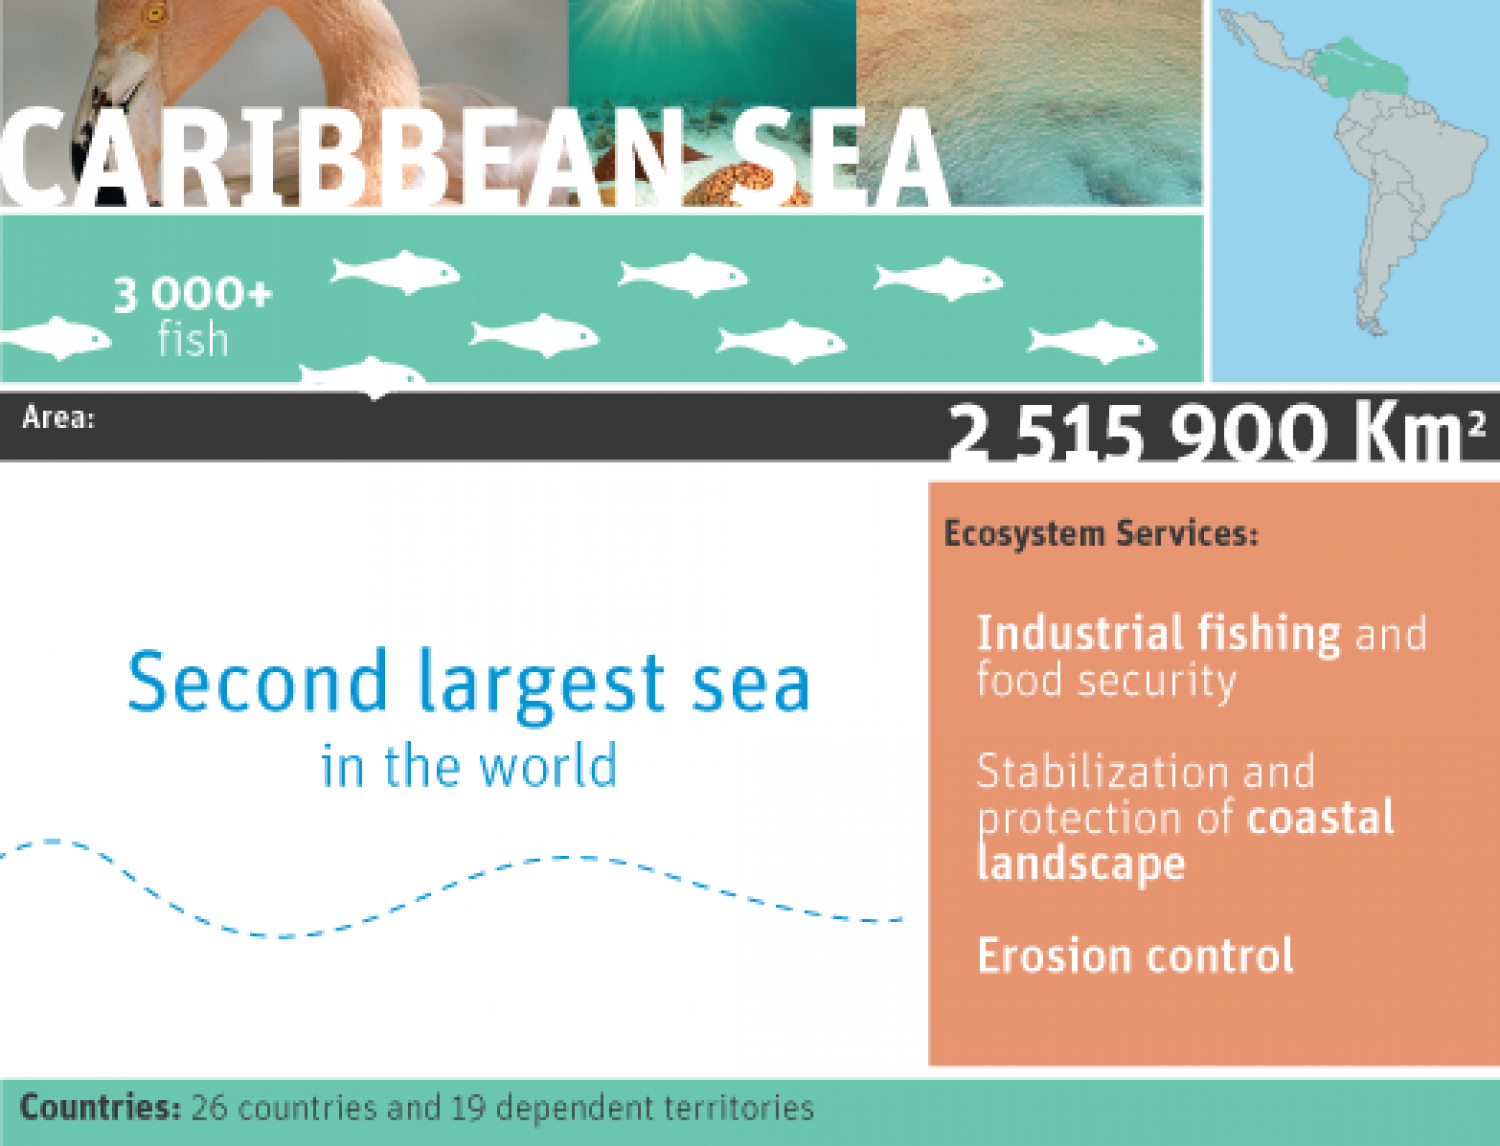 Caribbean sea Infographic